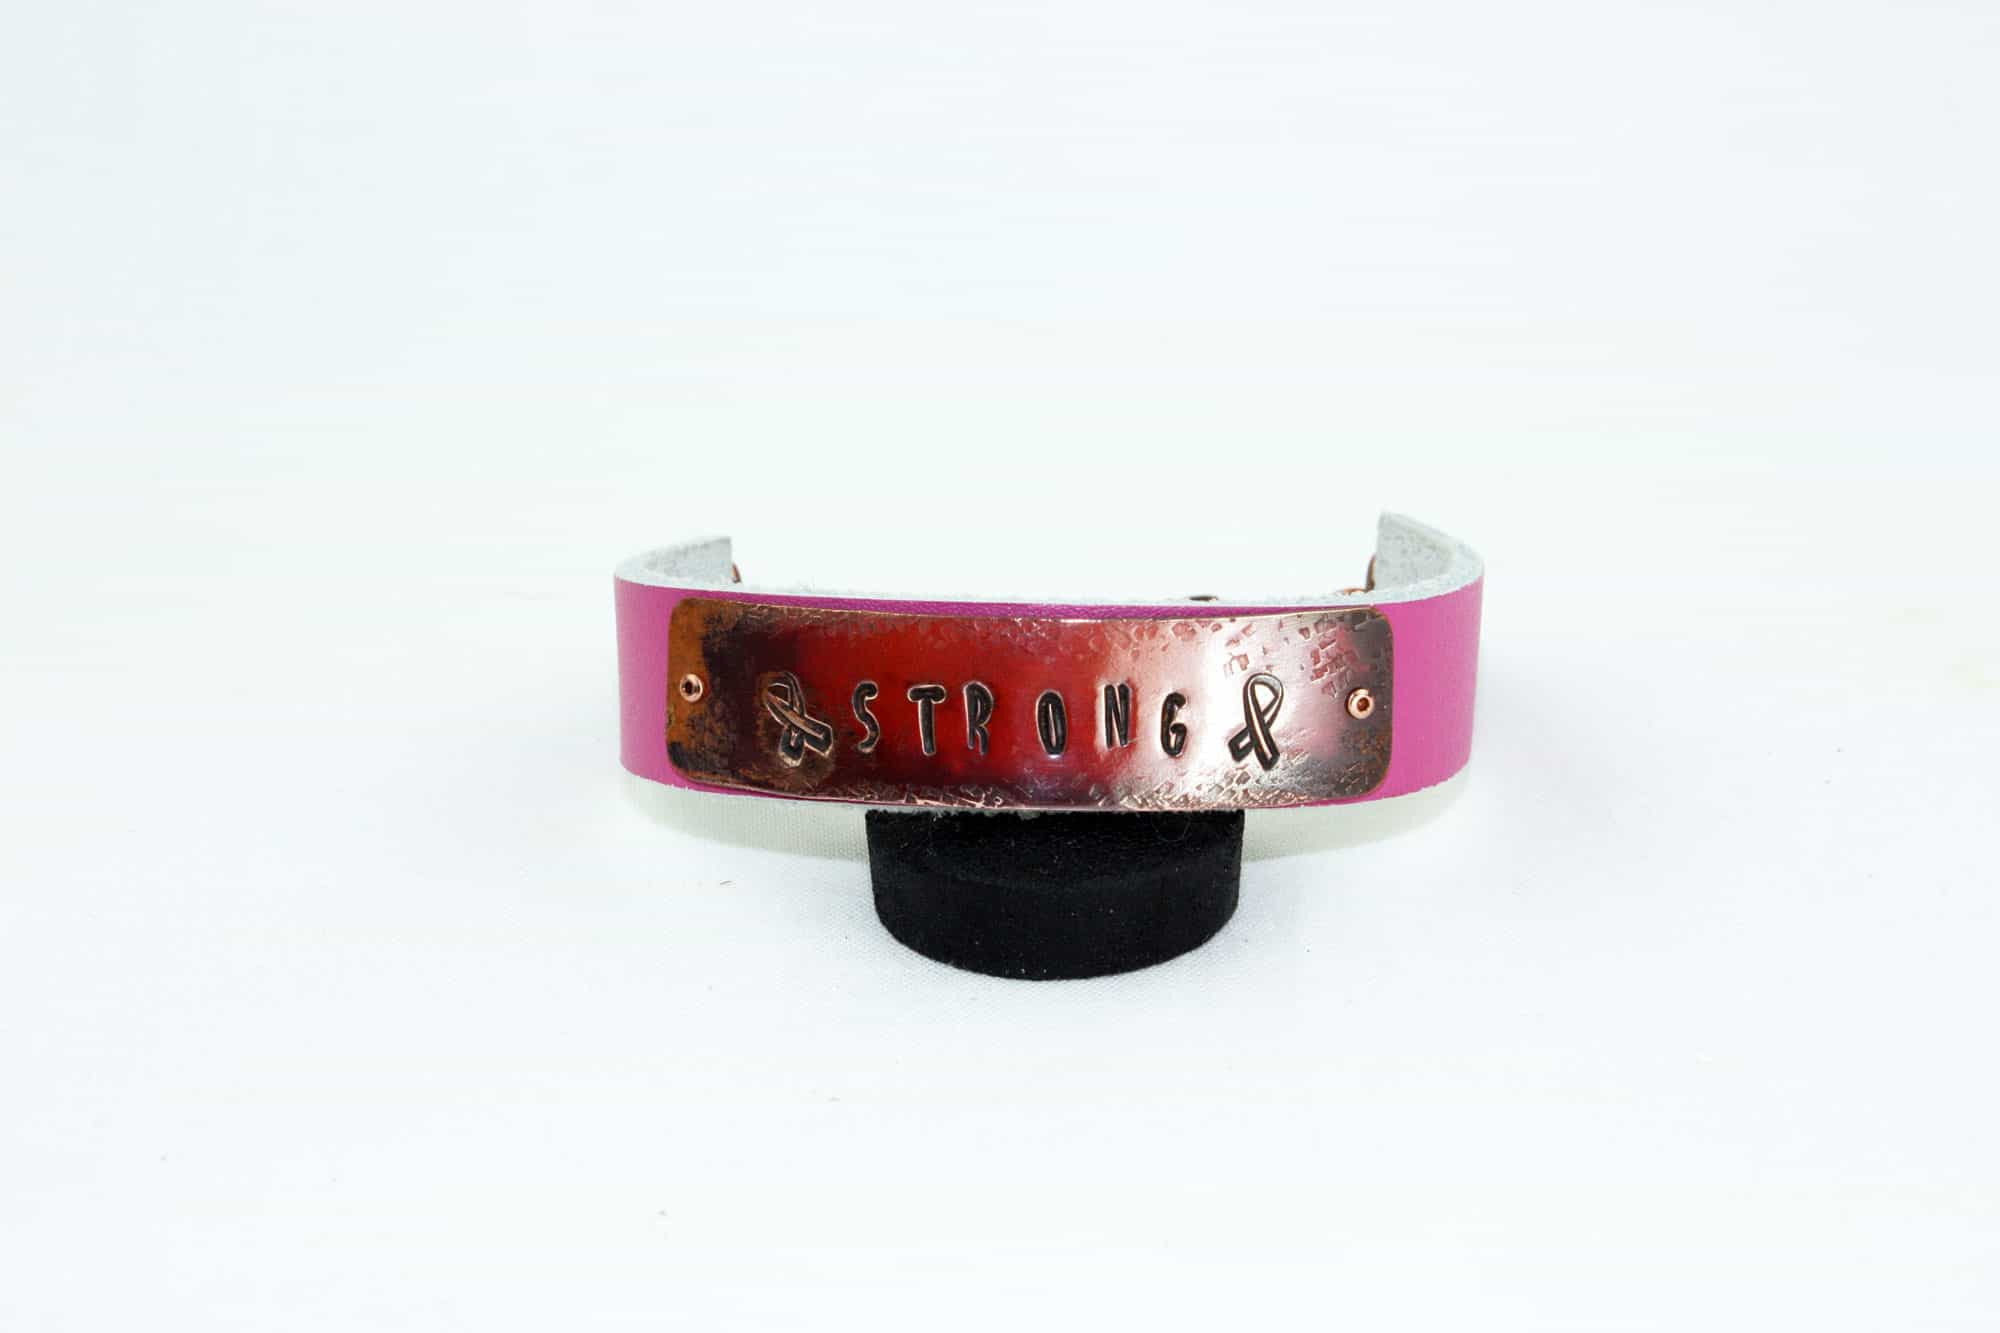 Strong Copper and Leather Bracelet